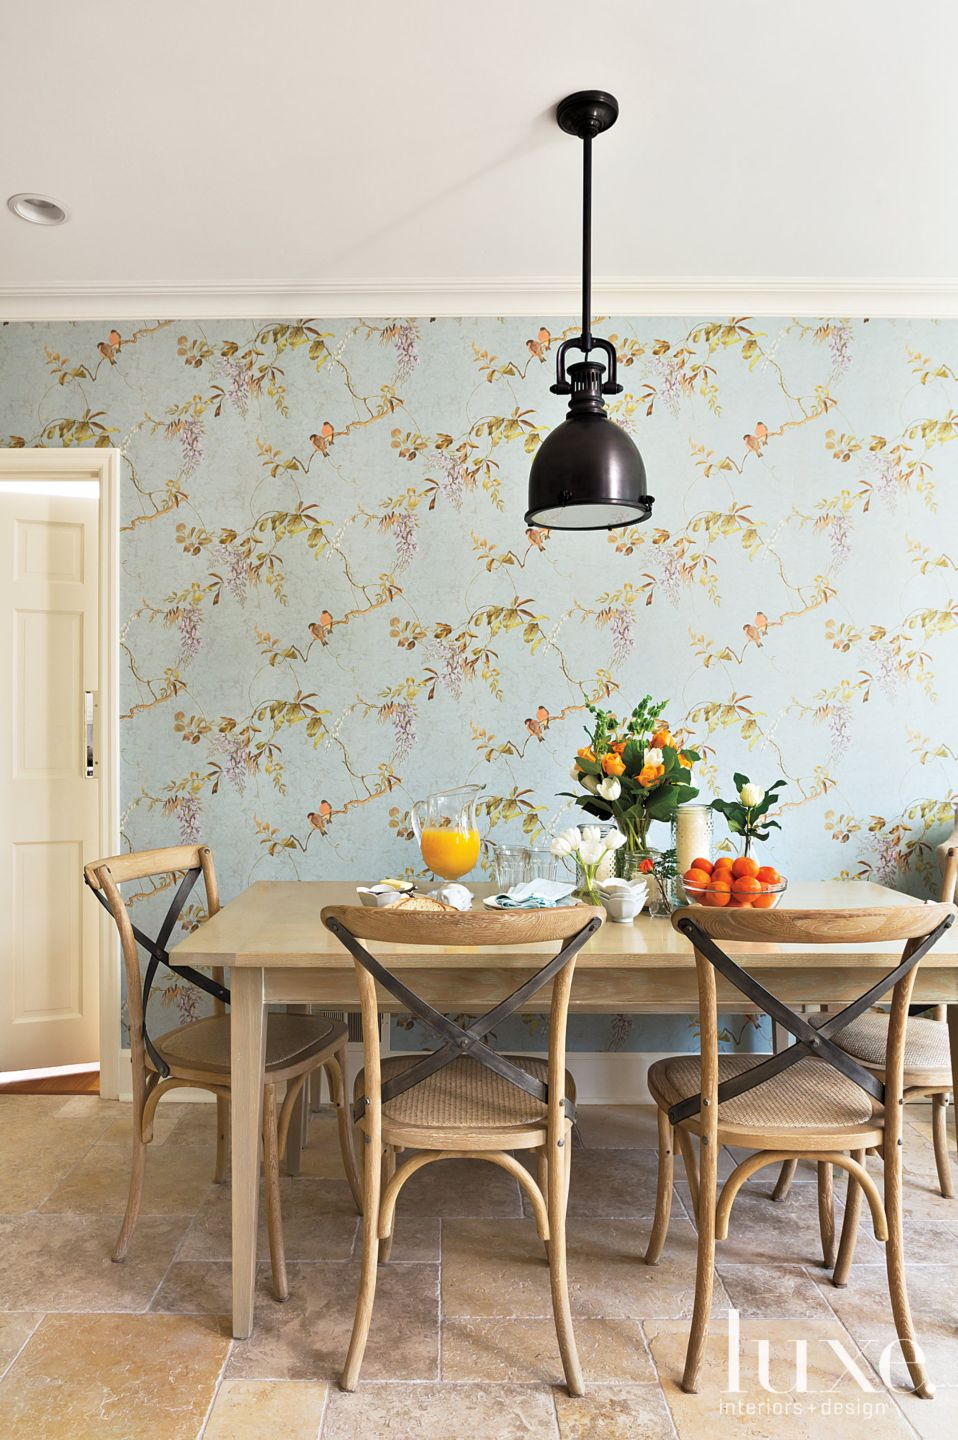 Transitional Blue Breakfast Nook with Floral Wallpaper